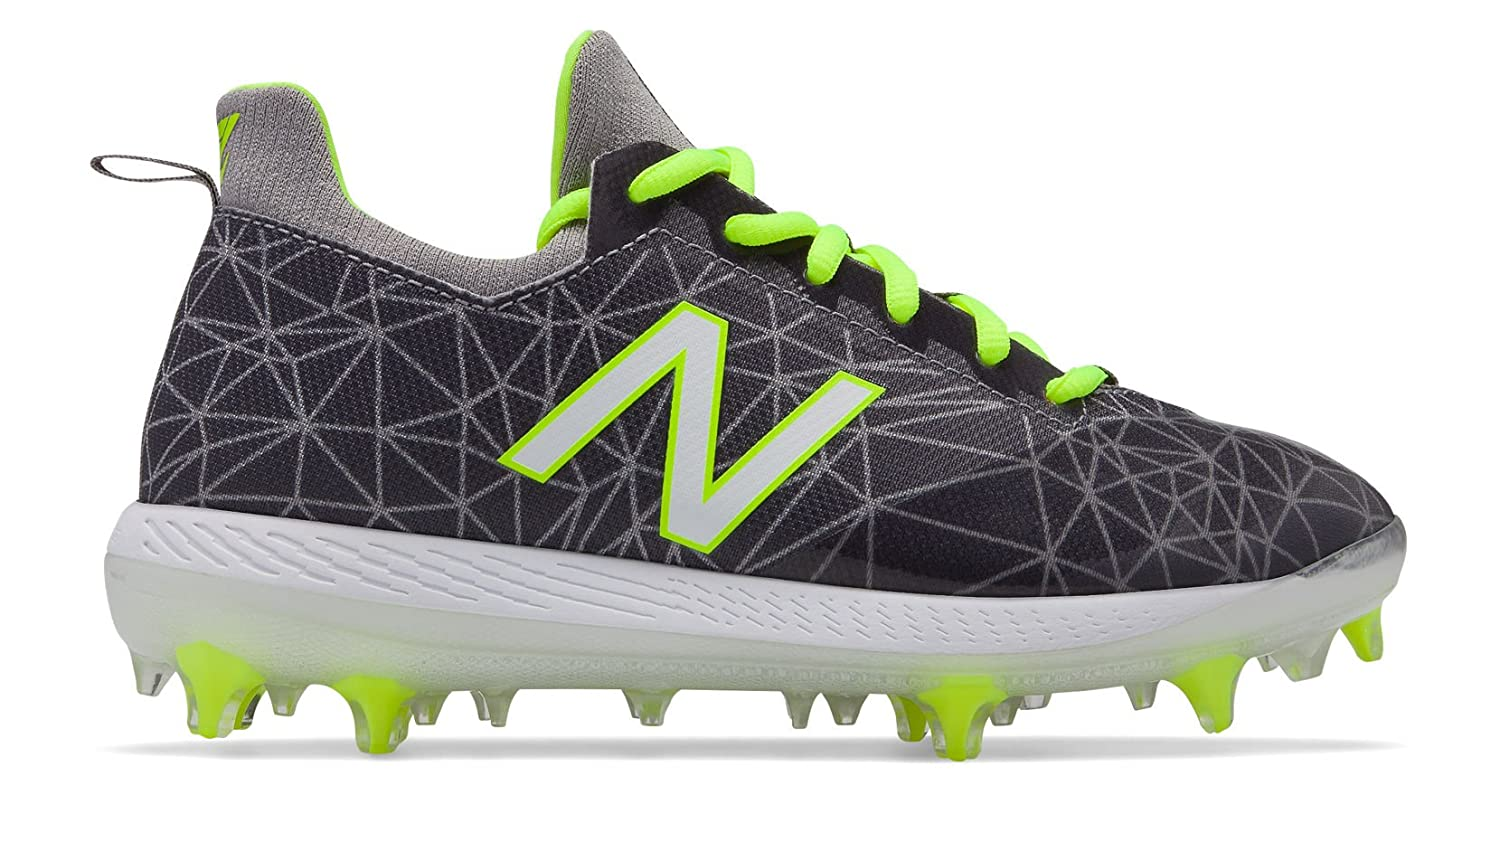 db0c890a58e8 Amazon.com | New Balance Kids' Francisco Lindor Elite Baseball Cleats |  Baseball & Softball